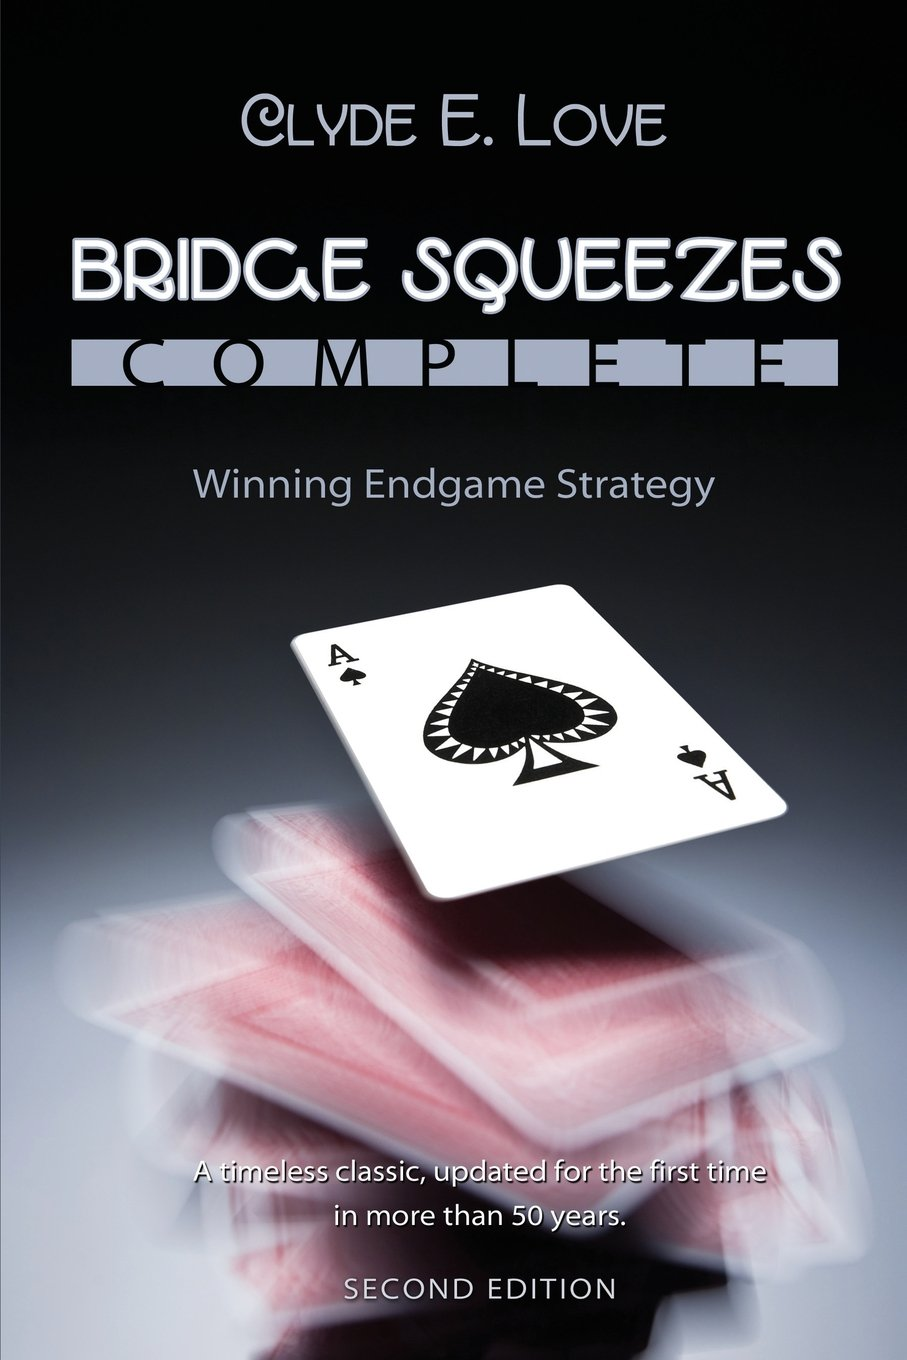 Bridge Squeezes Complete: Winning Endplay Strategy pdf